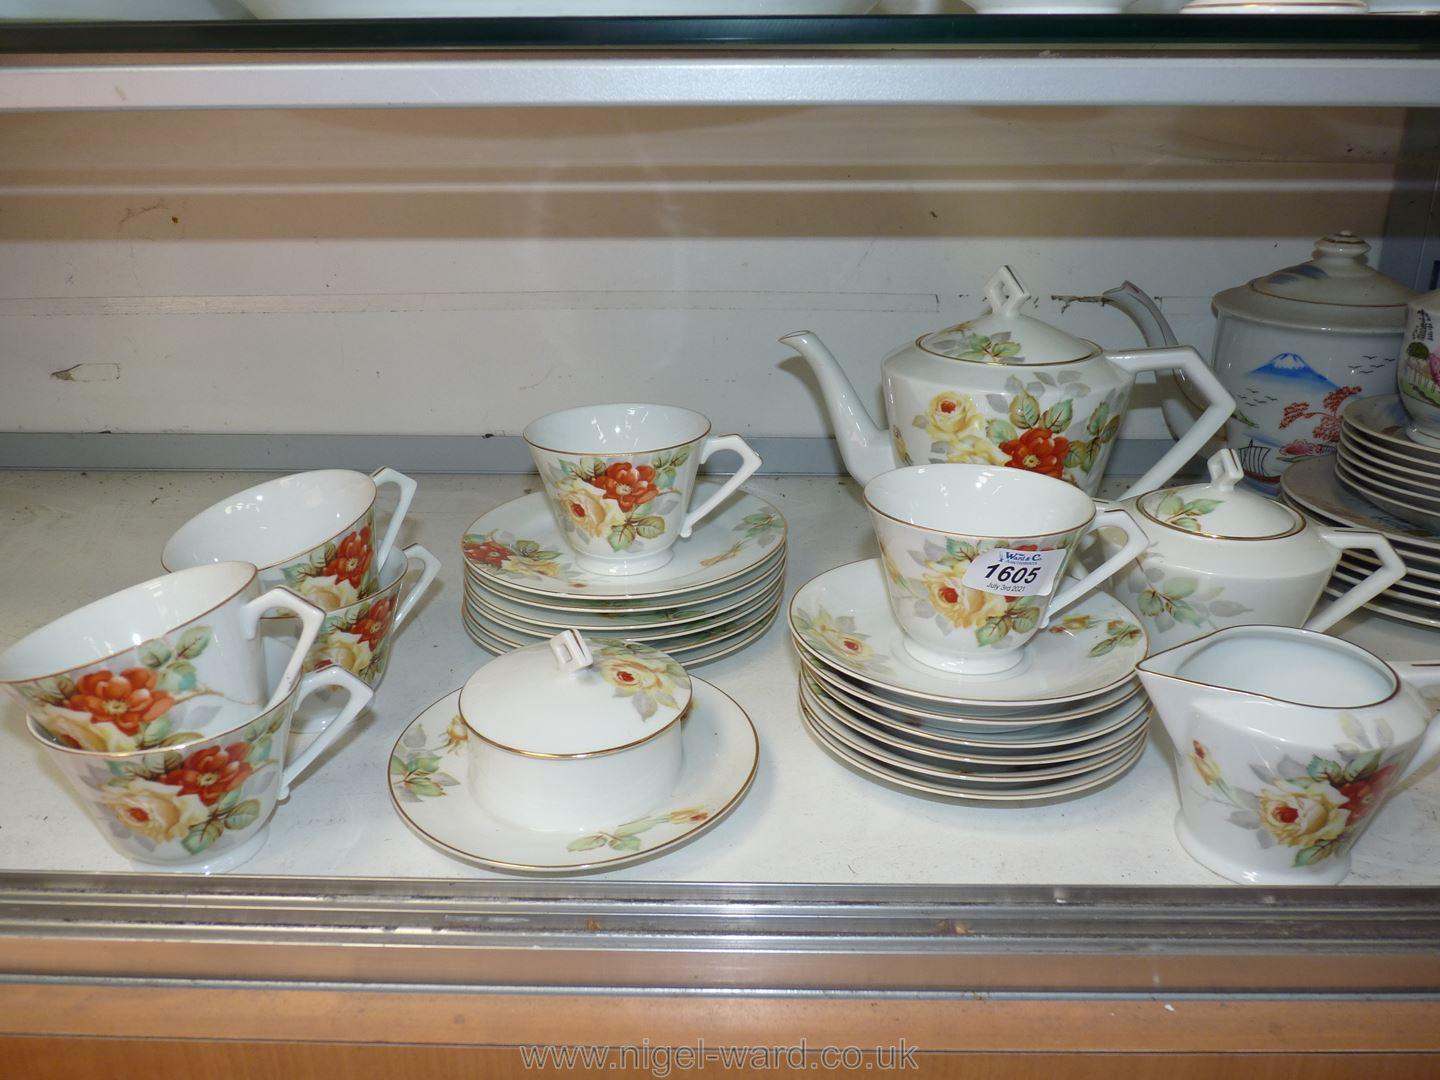 A Noritake tea service with orange and yellow flower pattern including six cups and saucers,